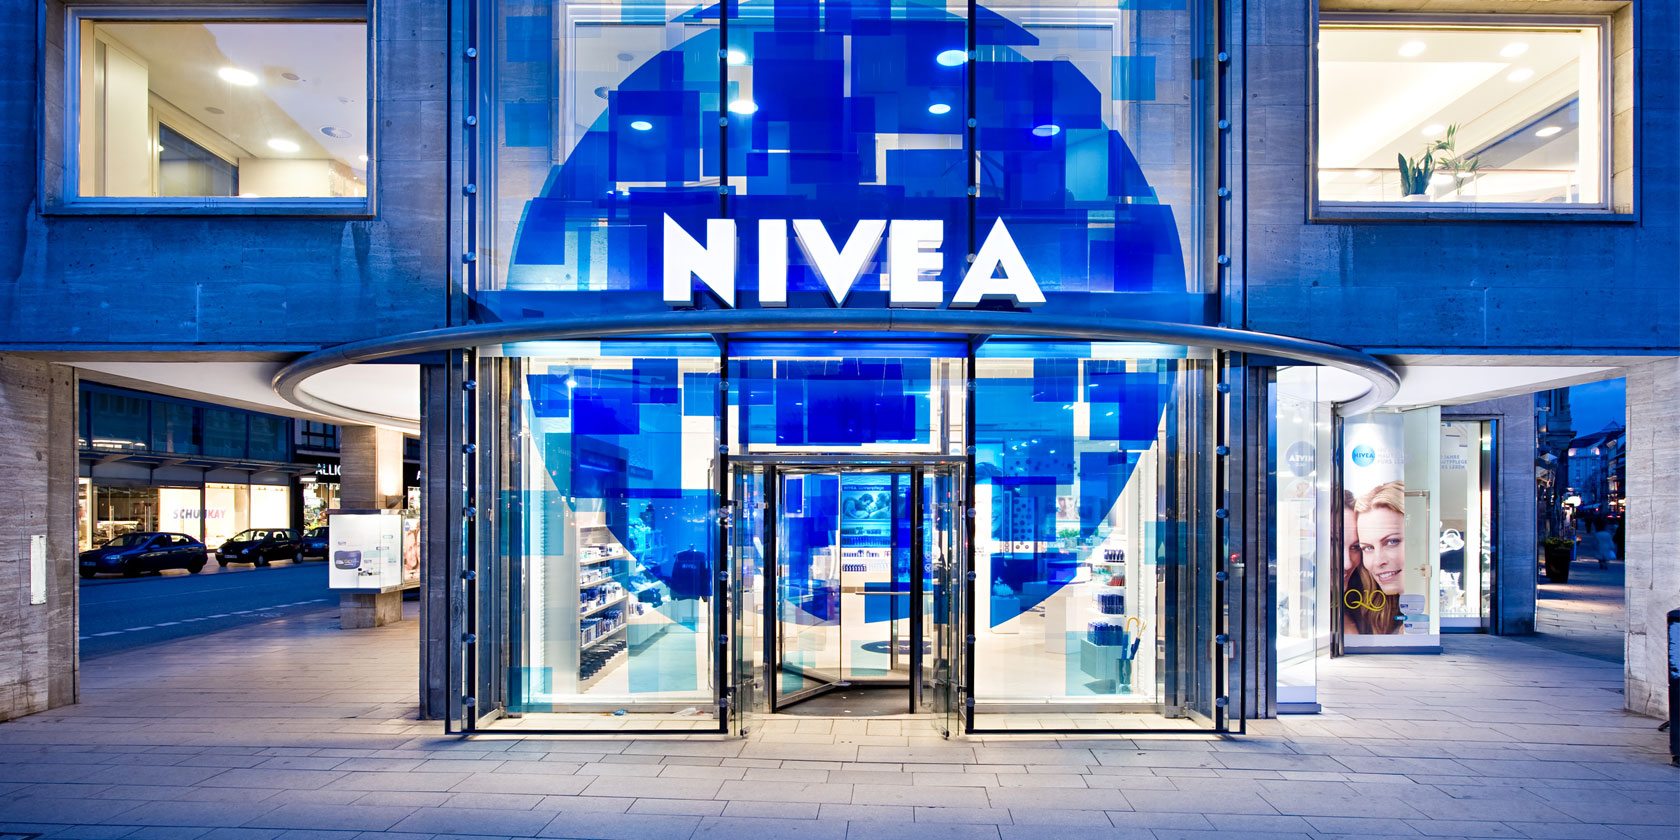 Nivea Spa Hamburg